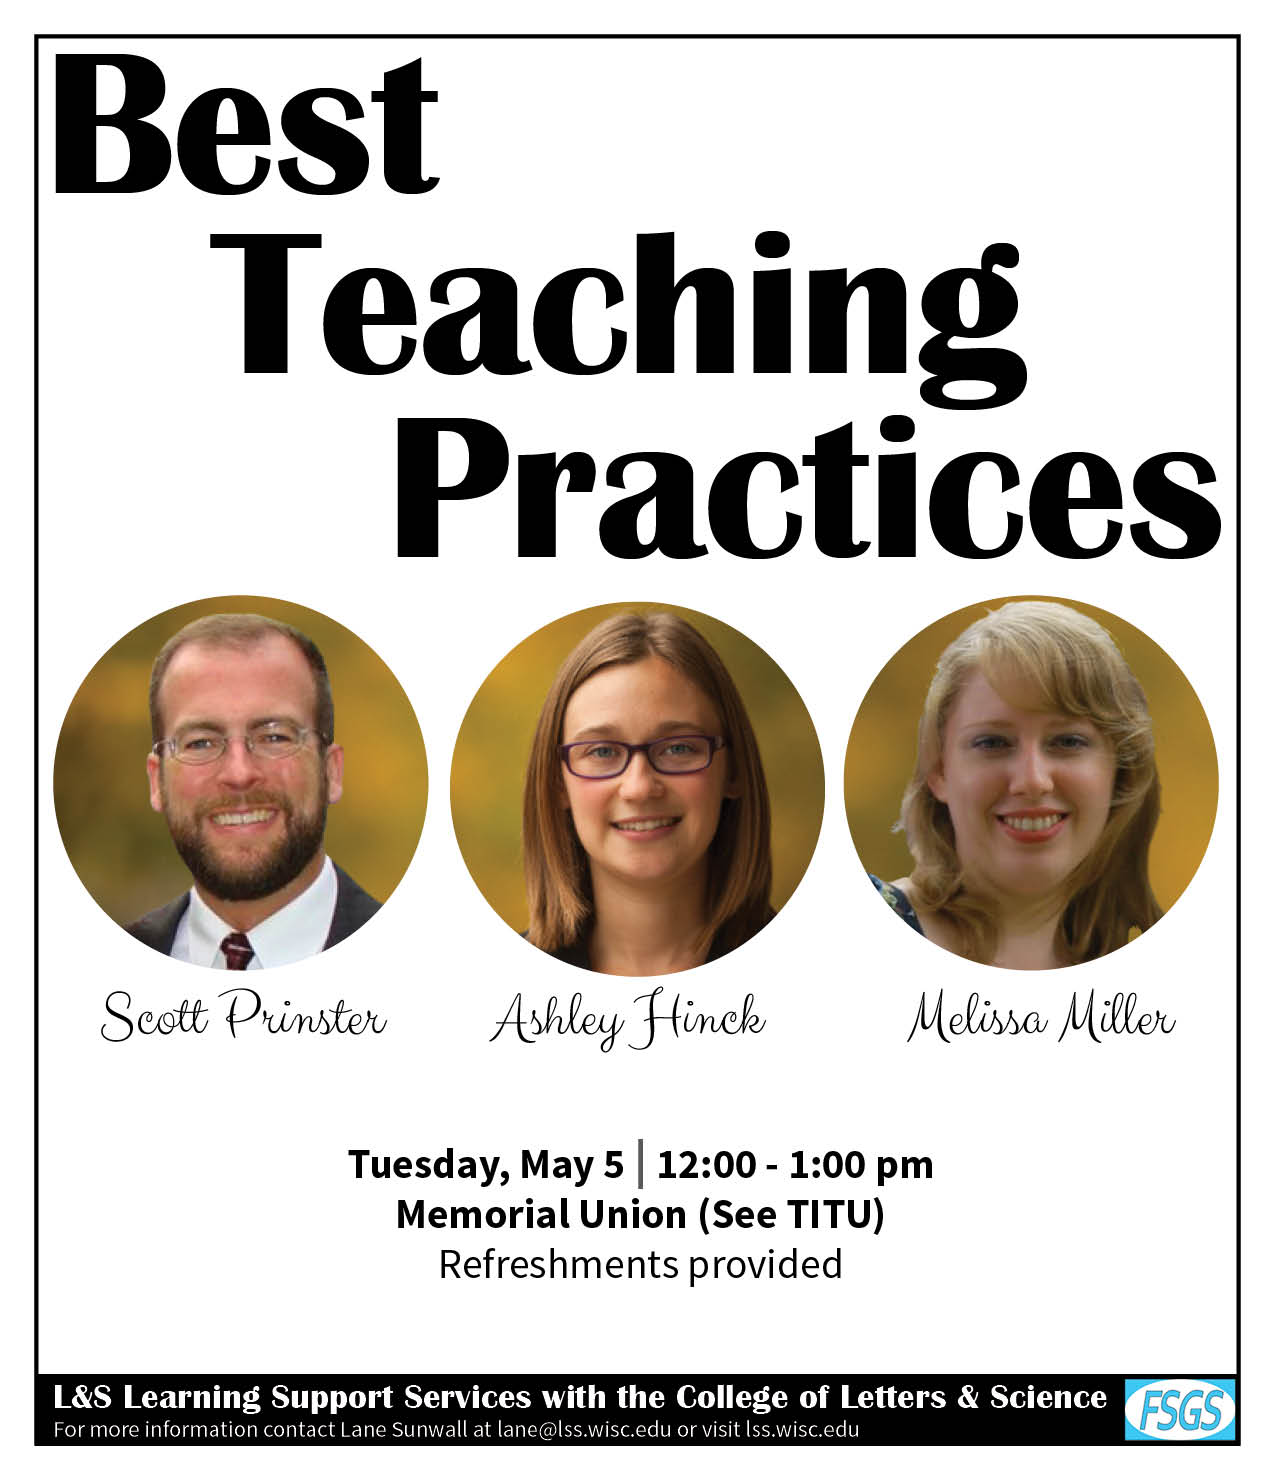 Best Teaching Practices Poster